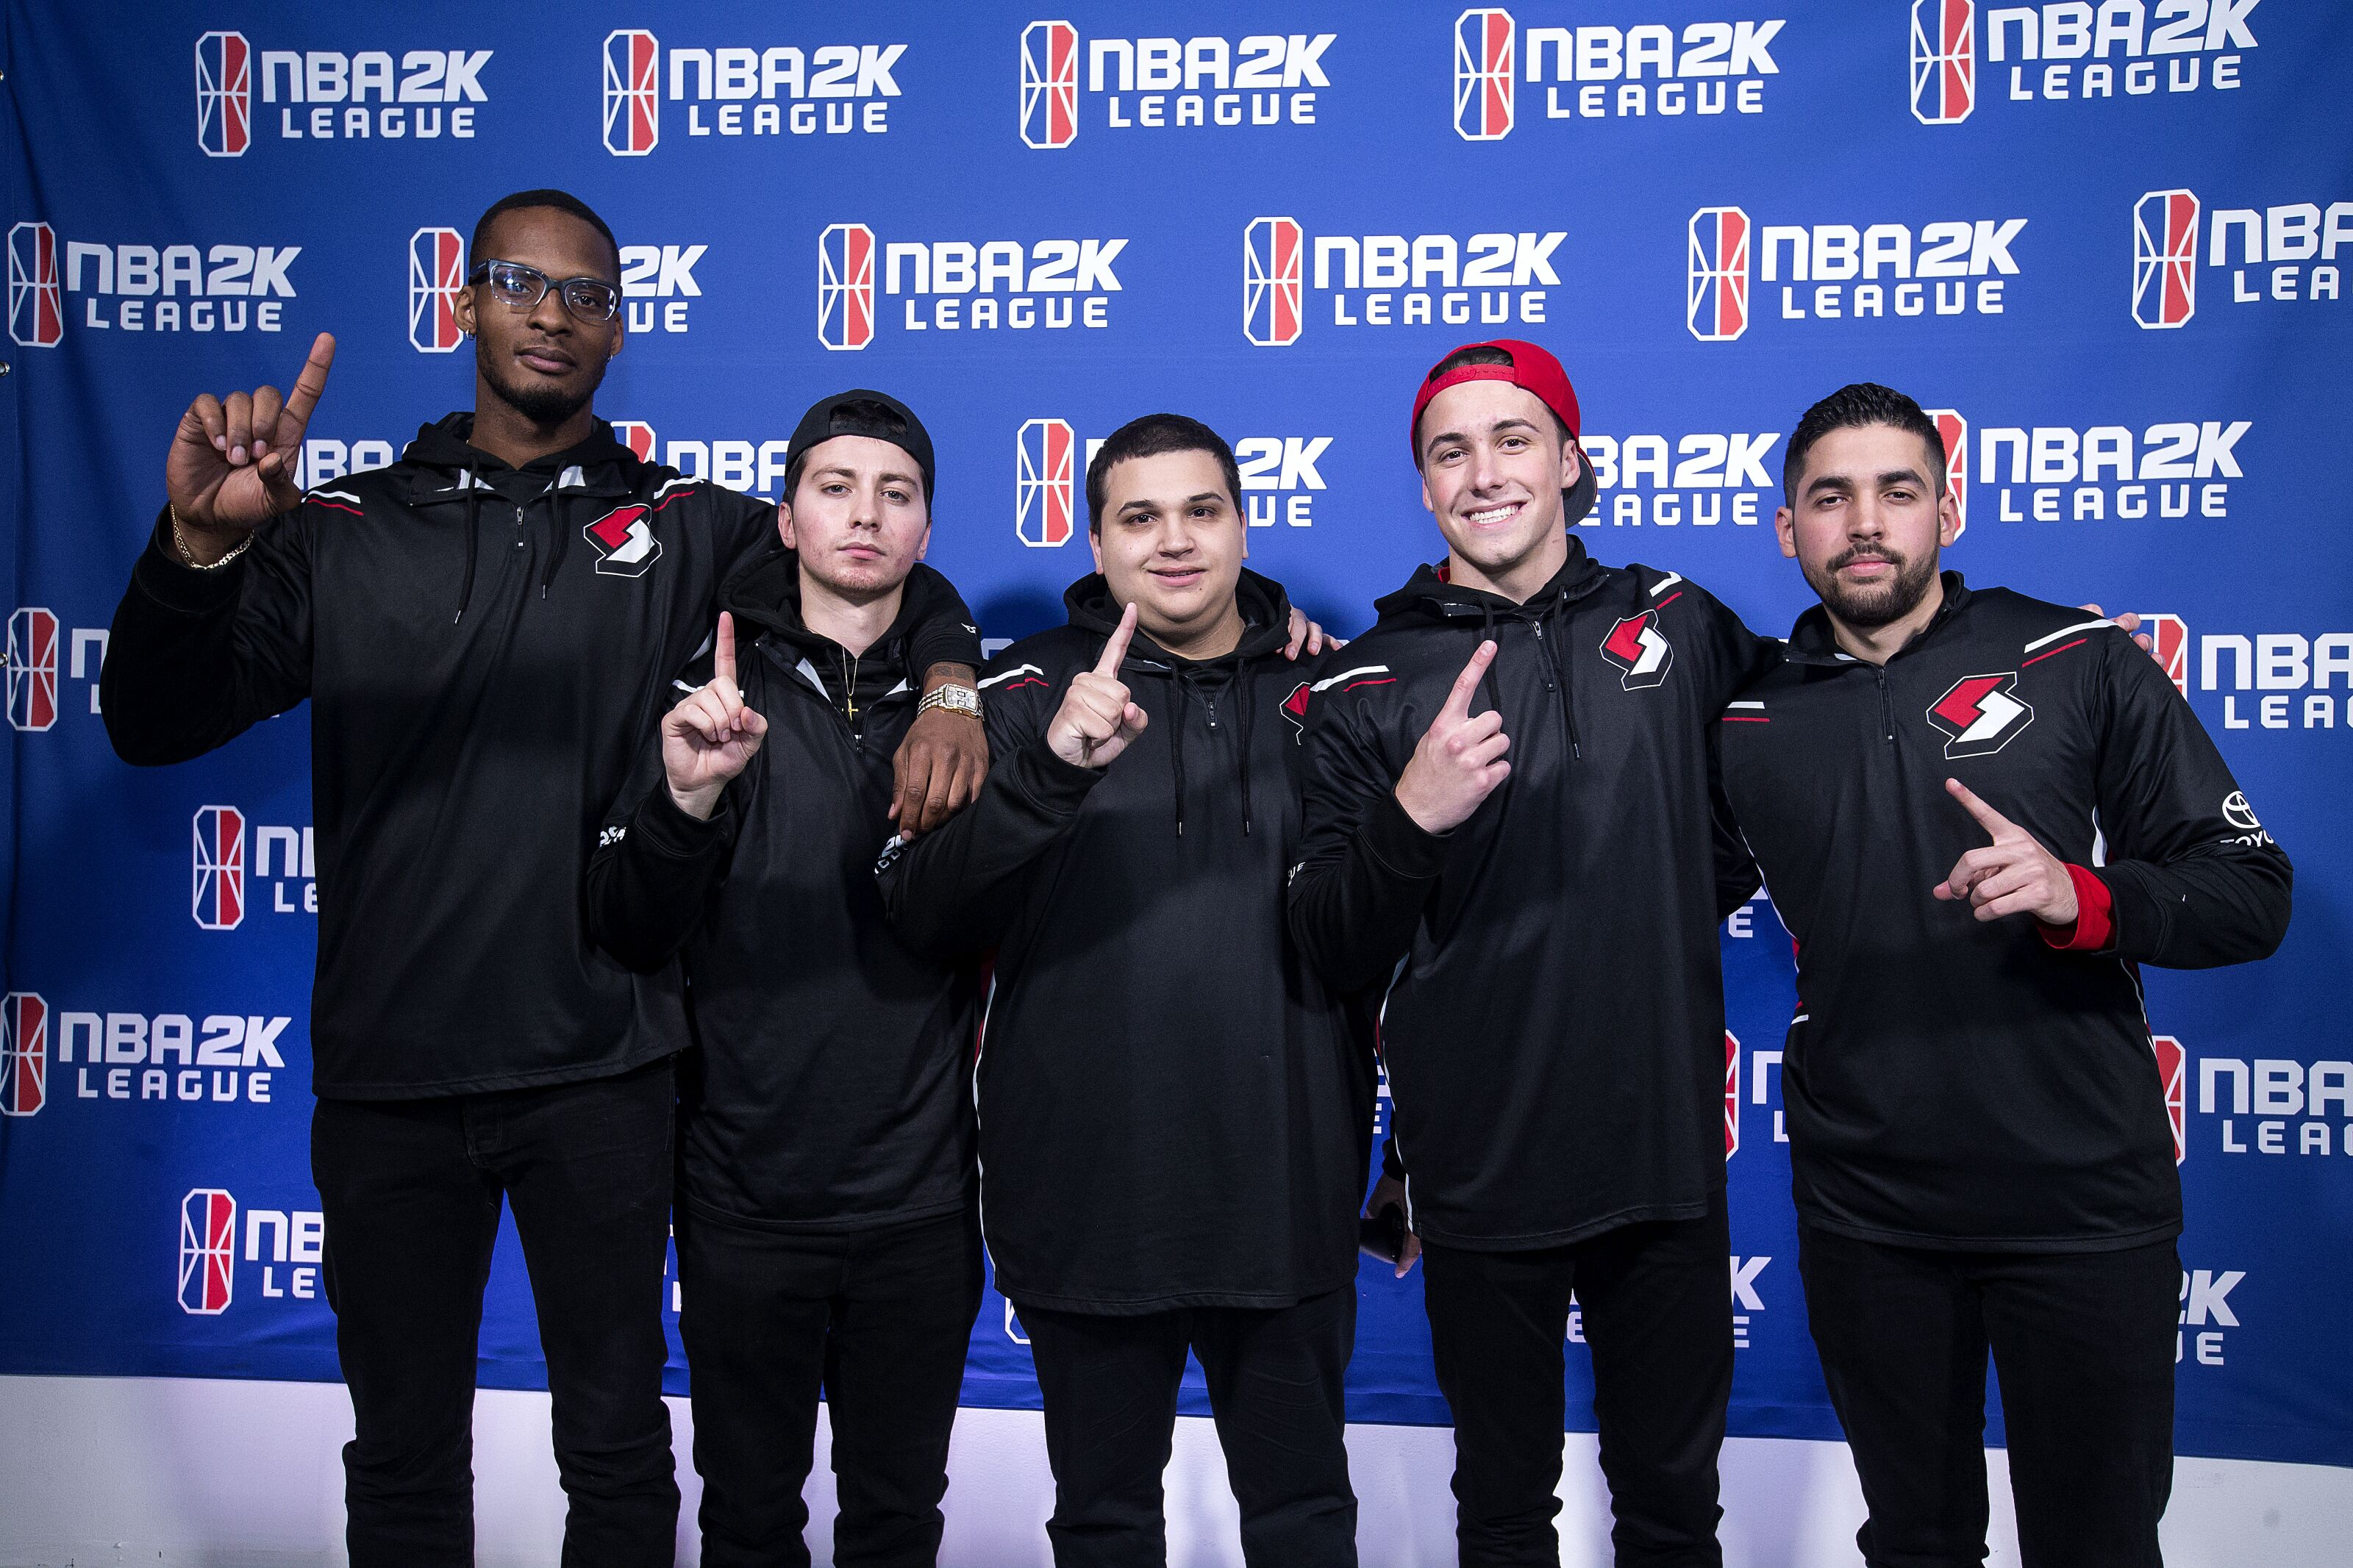 Blazer5 Gaming Looks To Continue Dominance In NBA 2K Playoffs